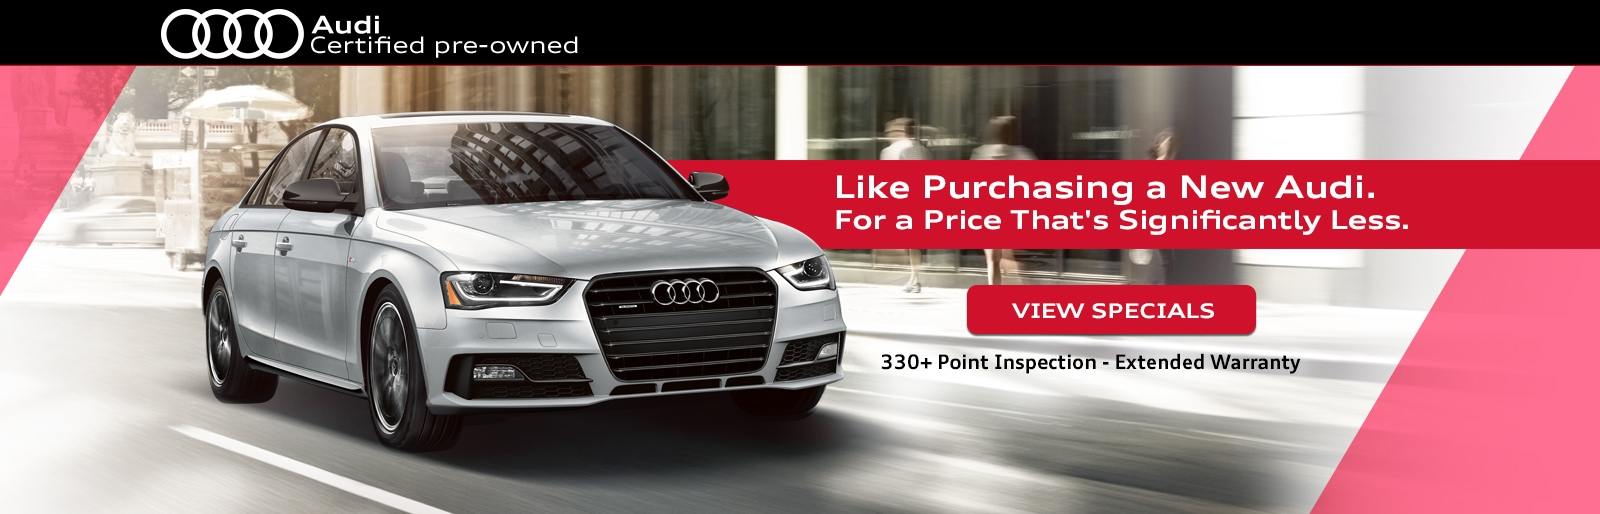 Audi Central Houston Audi Dealership In Houston TX - Audi certified pre owned warranty review